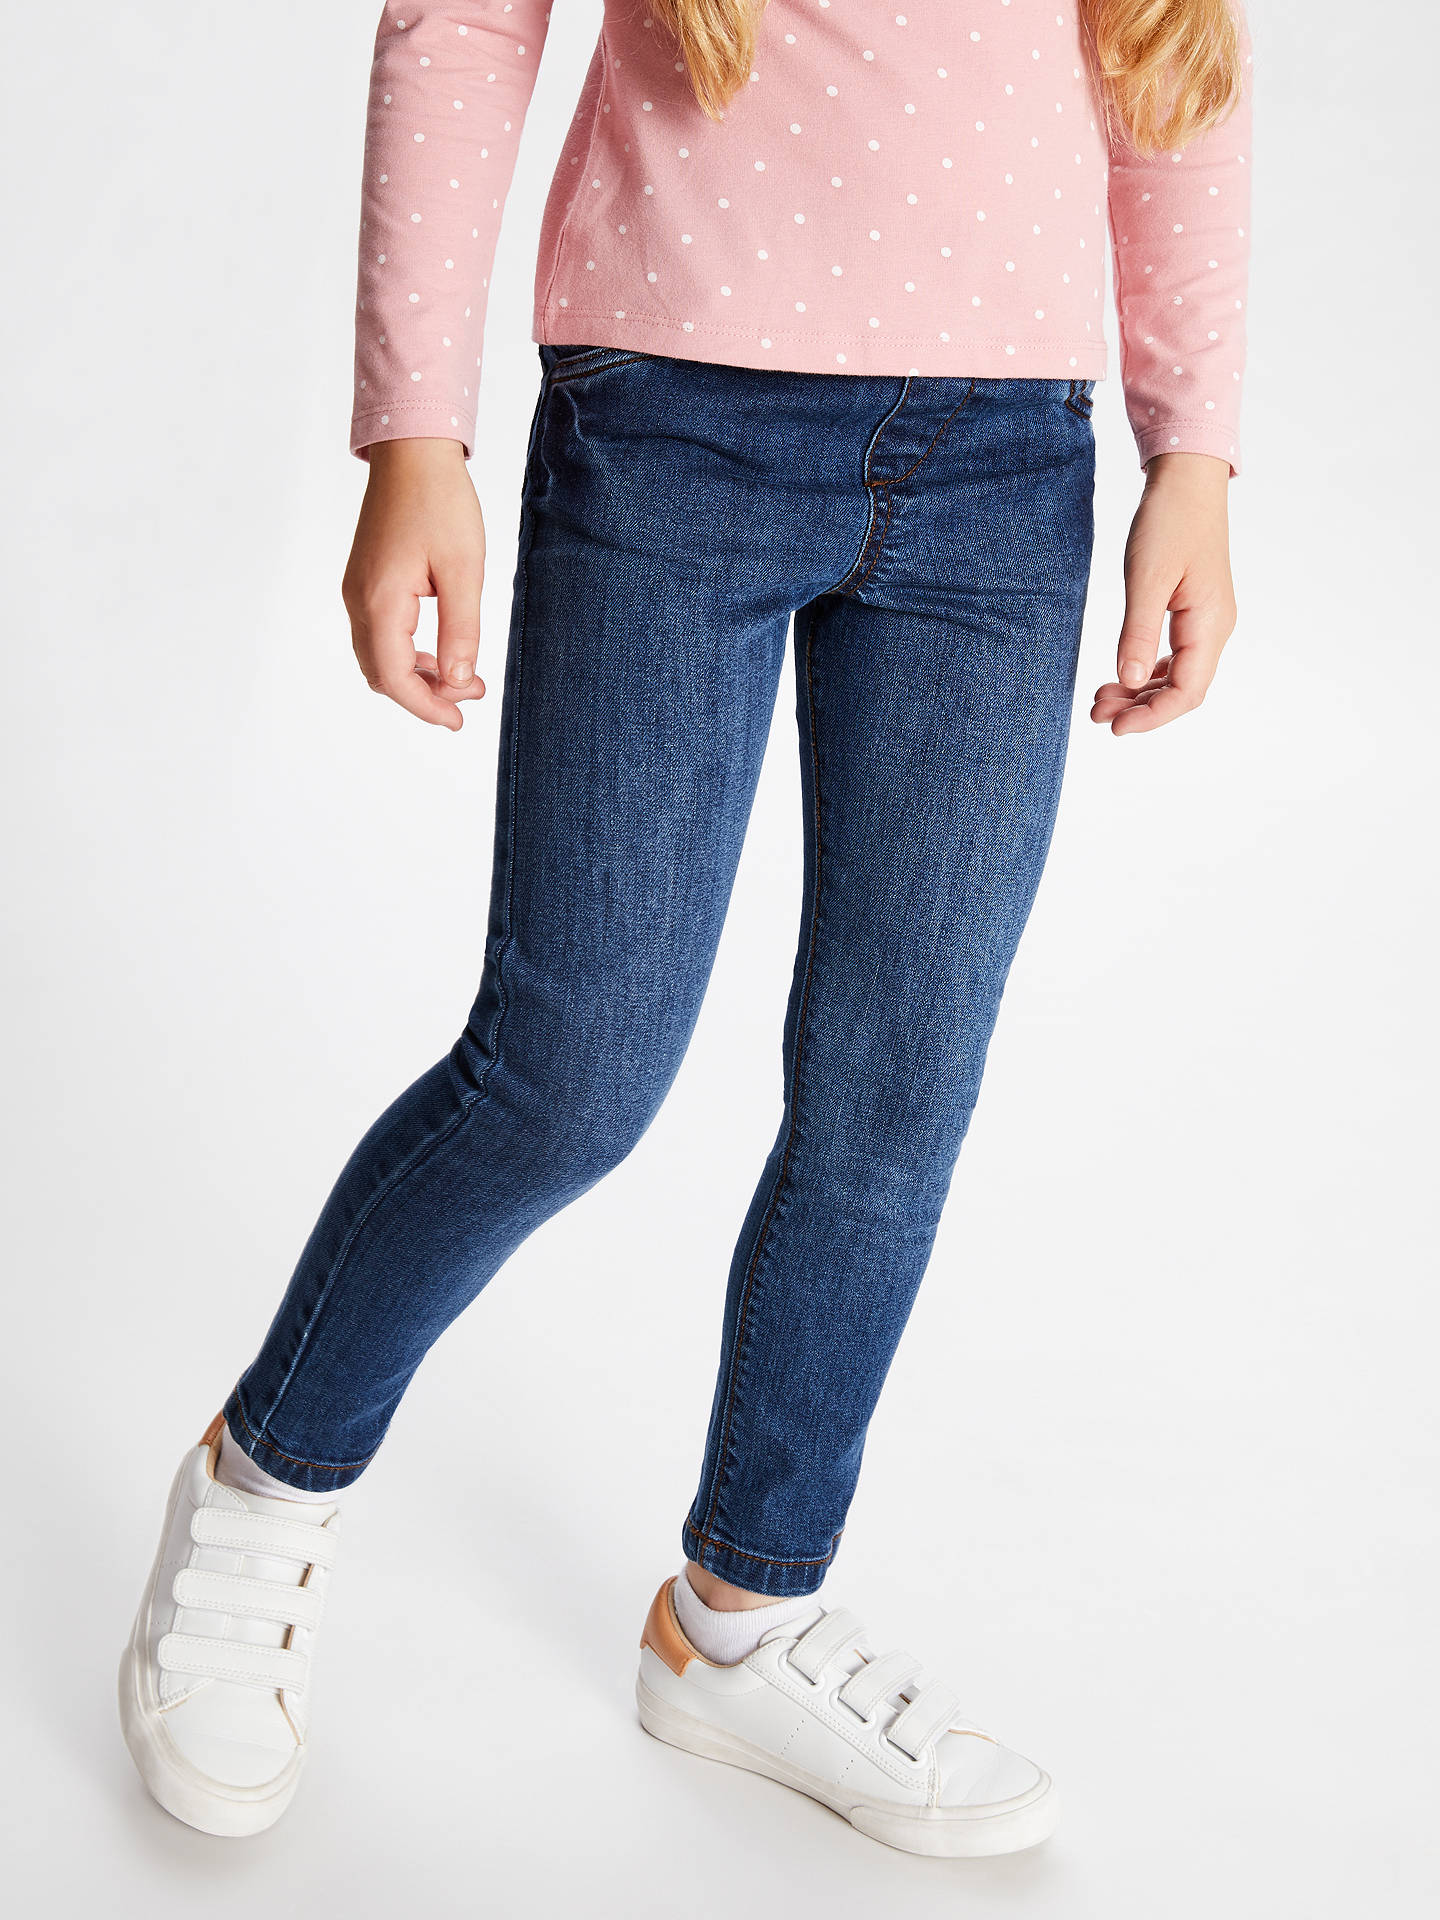 BuyJohn Lewis & Partners Girls' Fashion Jeggings, Blue, 2 years Online at johnlewis.com